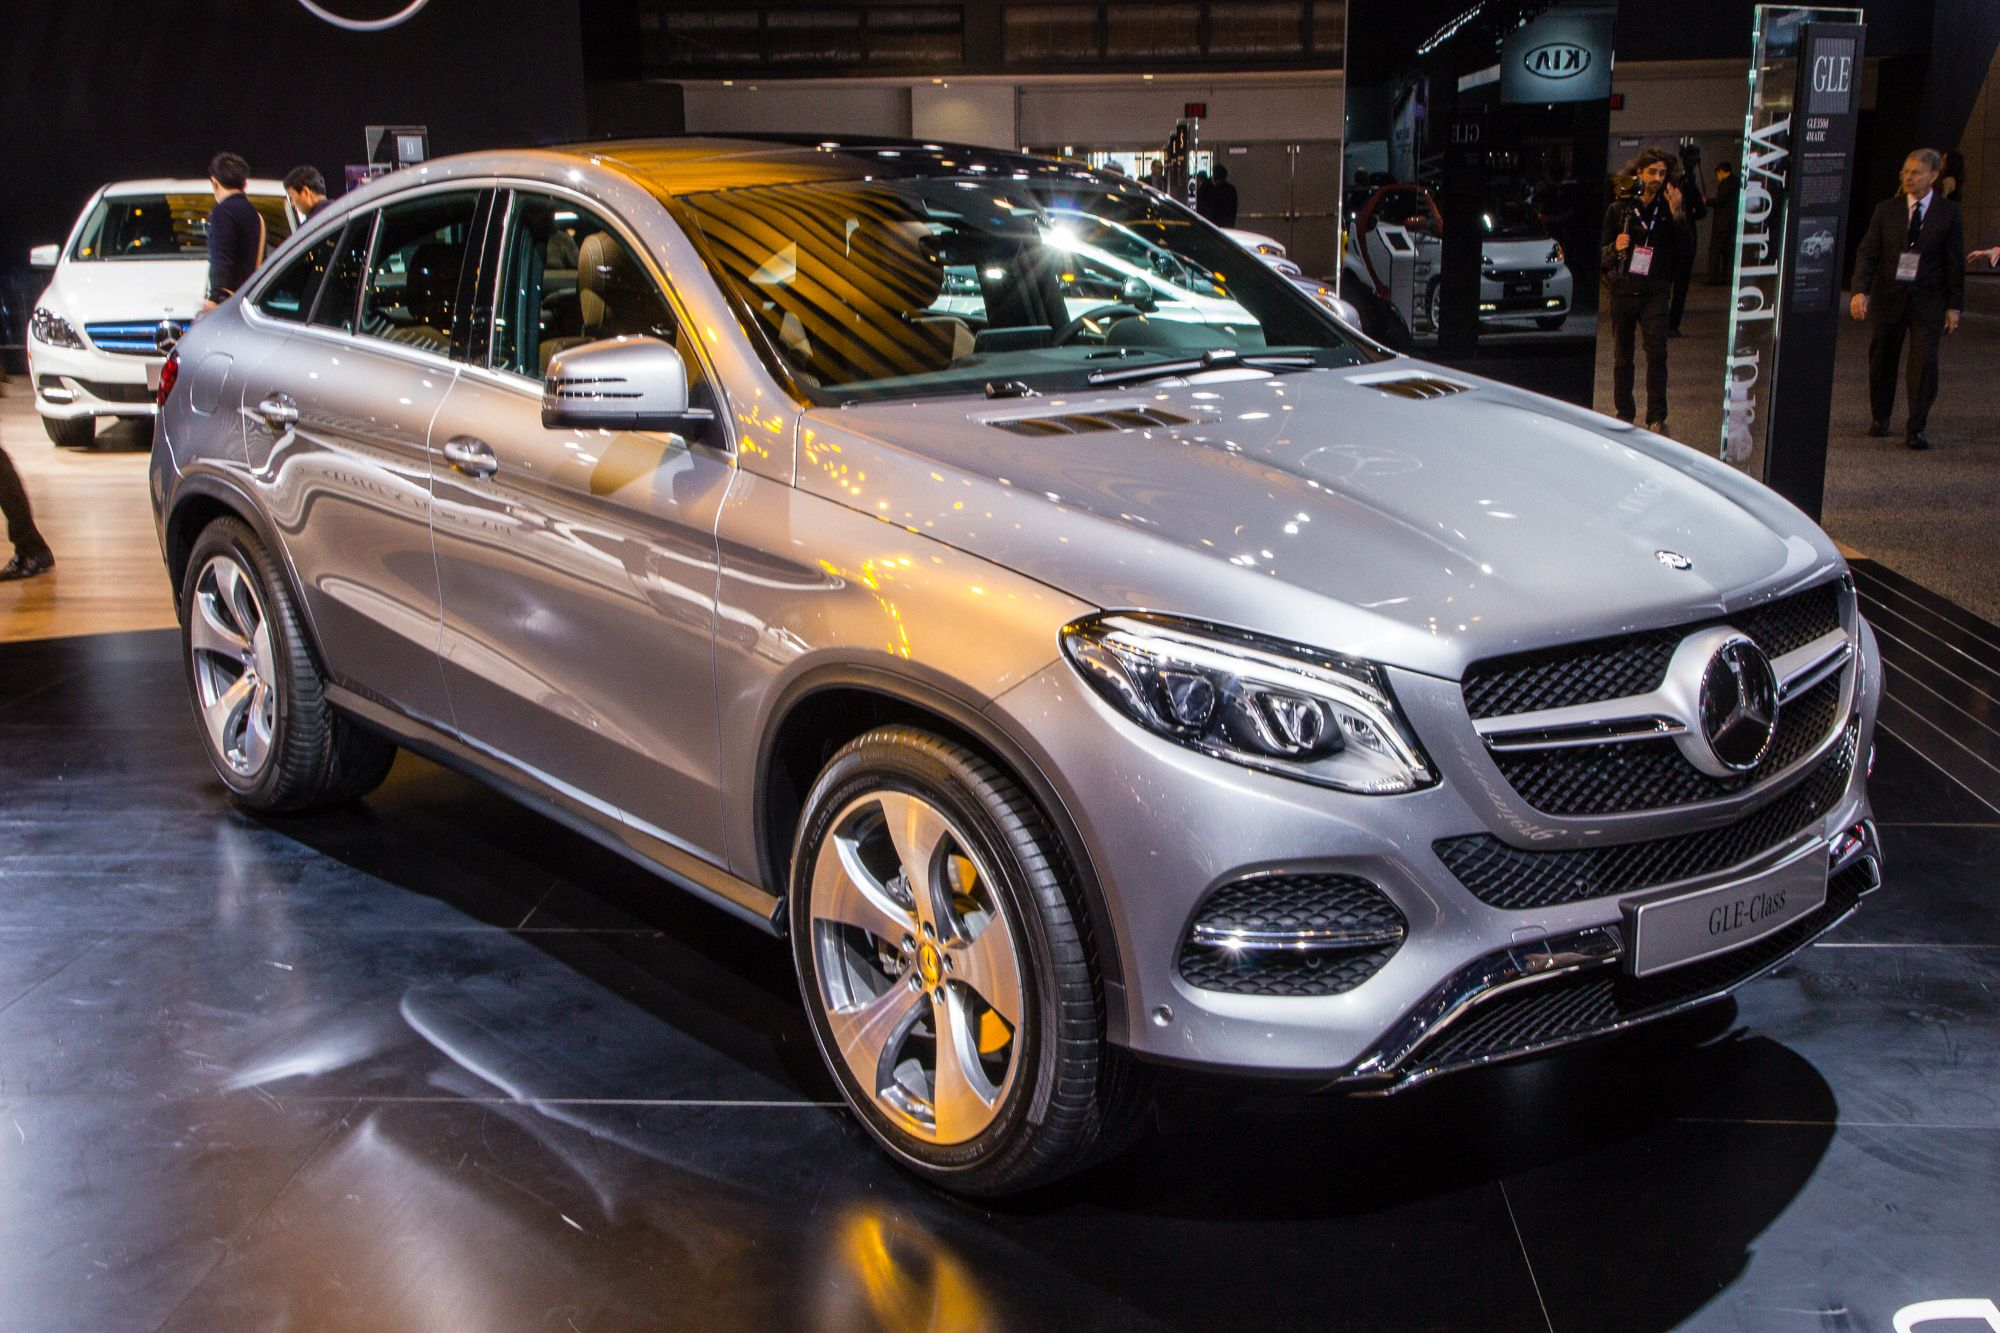 2016 Mercedes Benz GLE Coupe live photos 2015 Detroit Auto Show